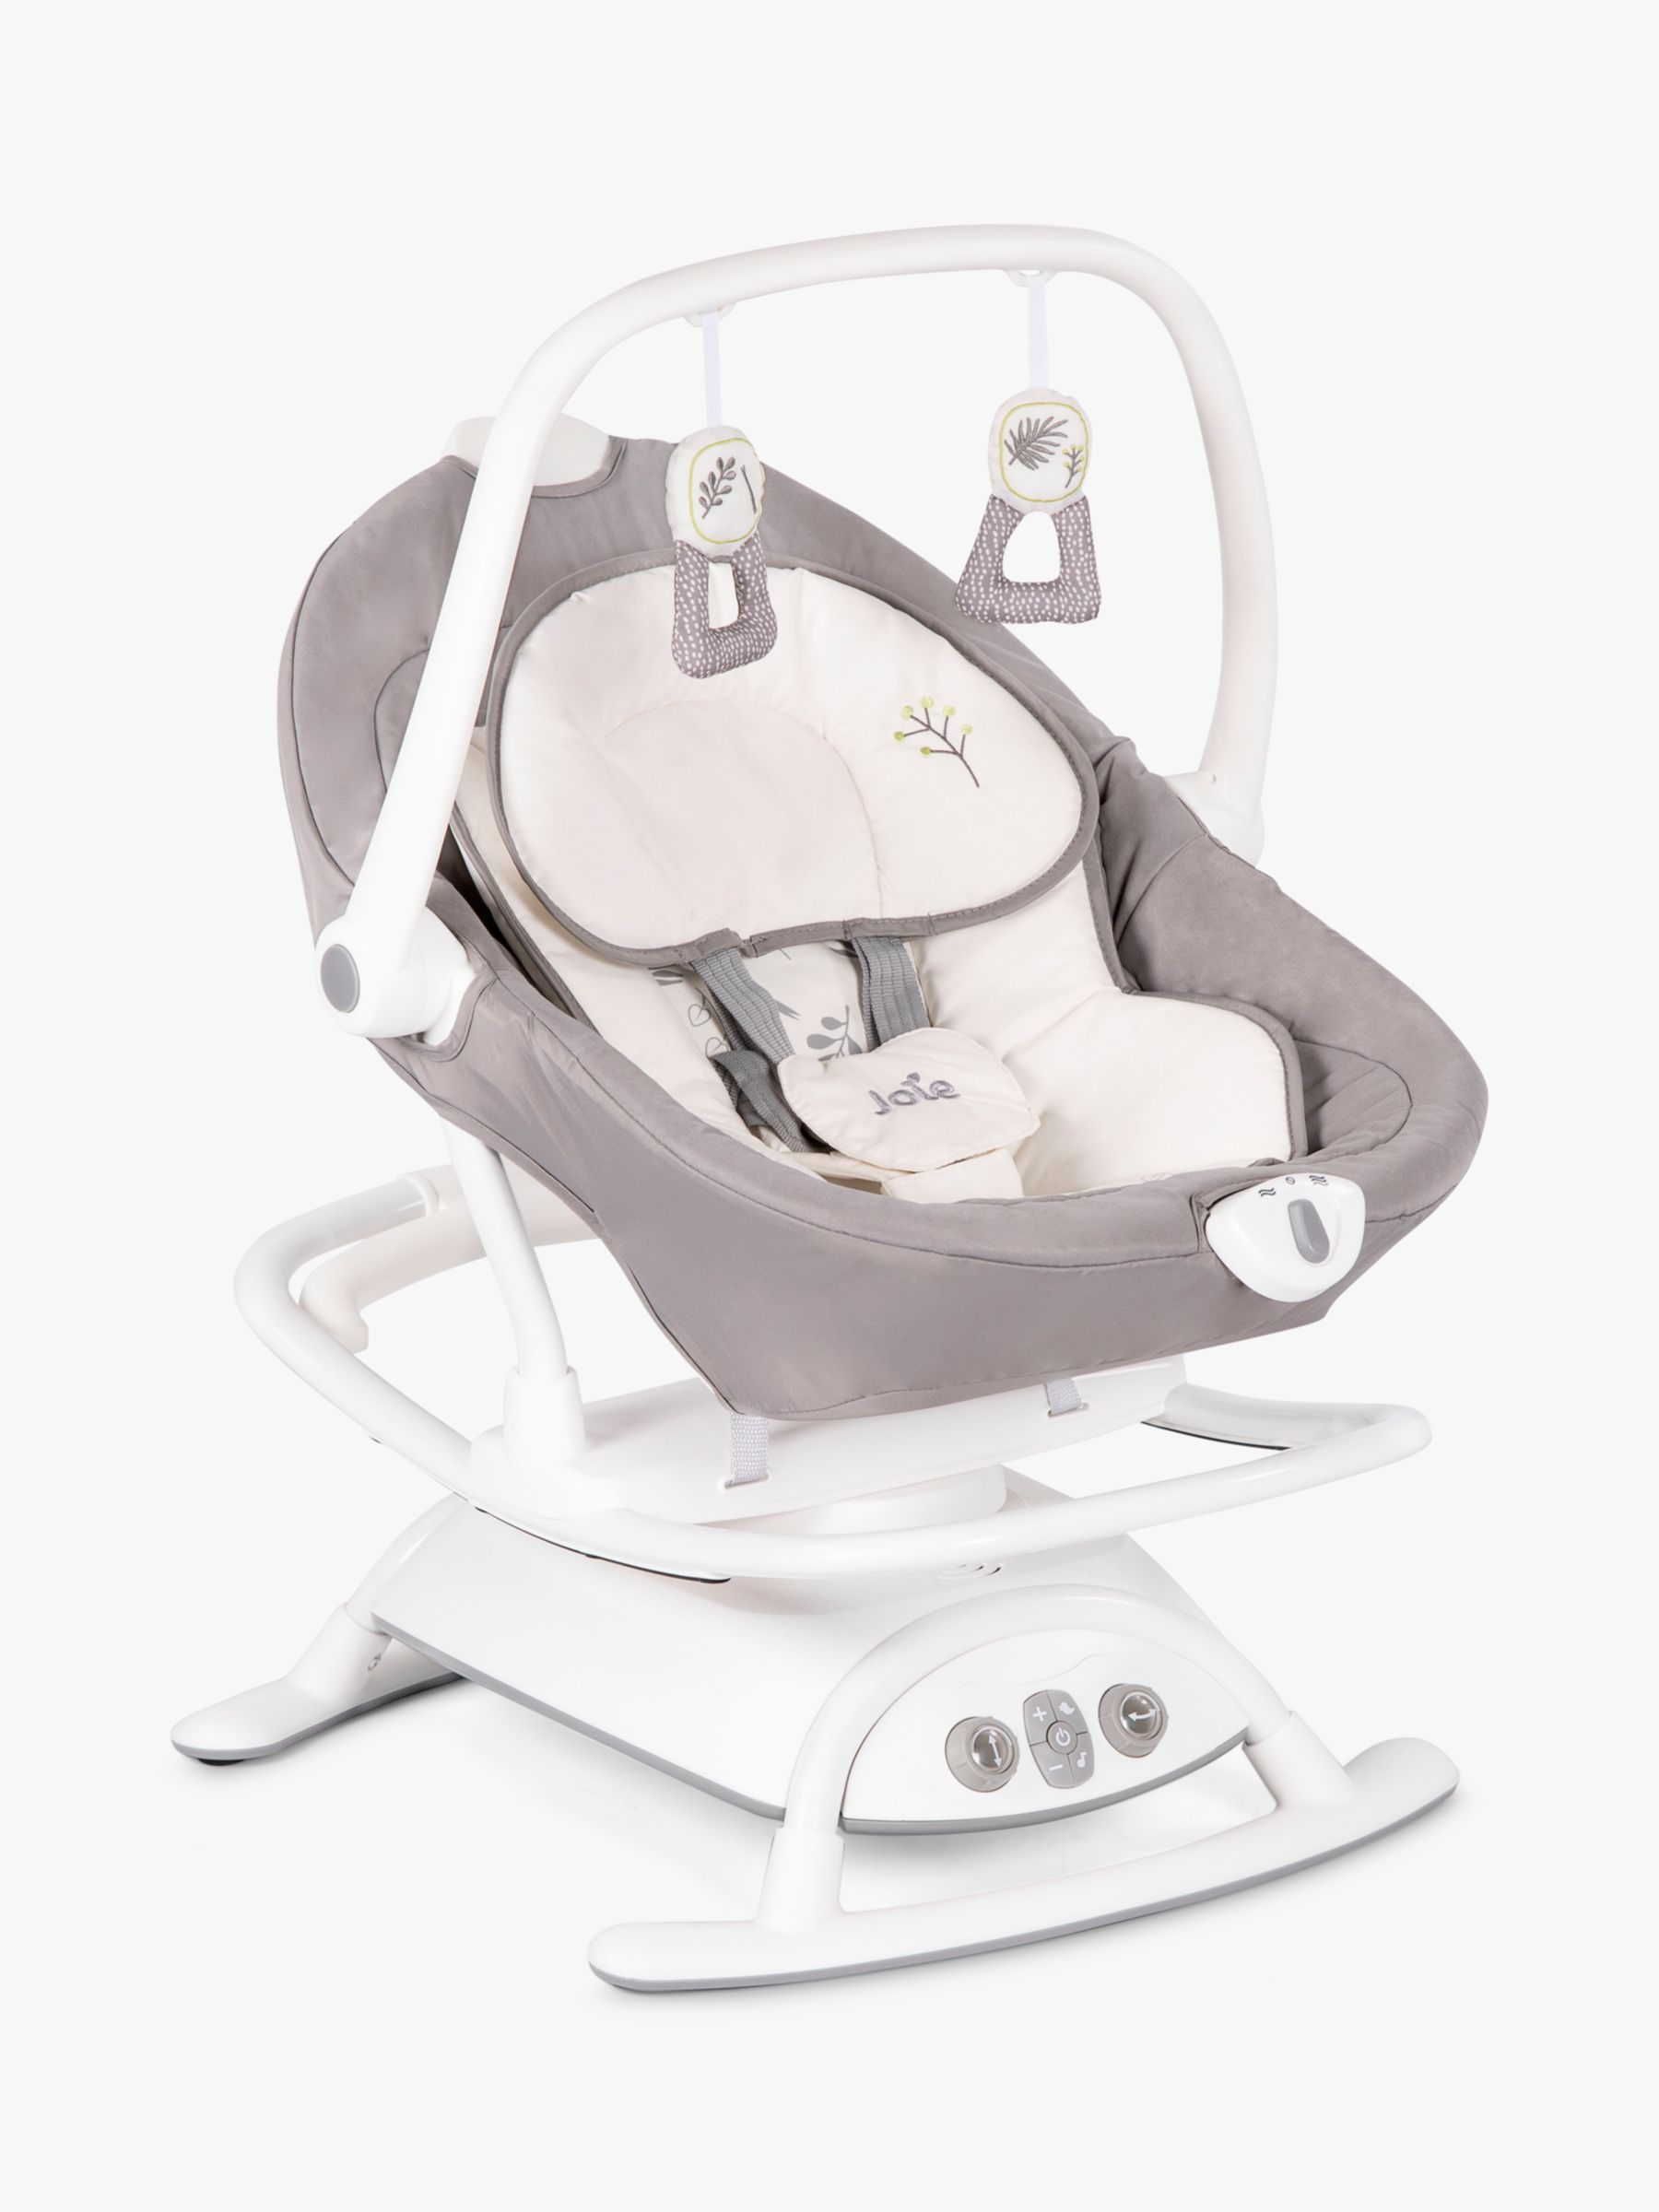 Joie Baby Joie Baby Sansa 2 in 1 Fern Swing and Rocker